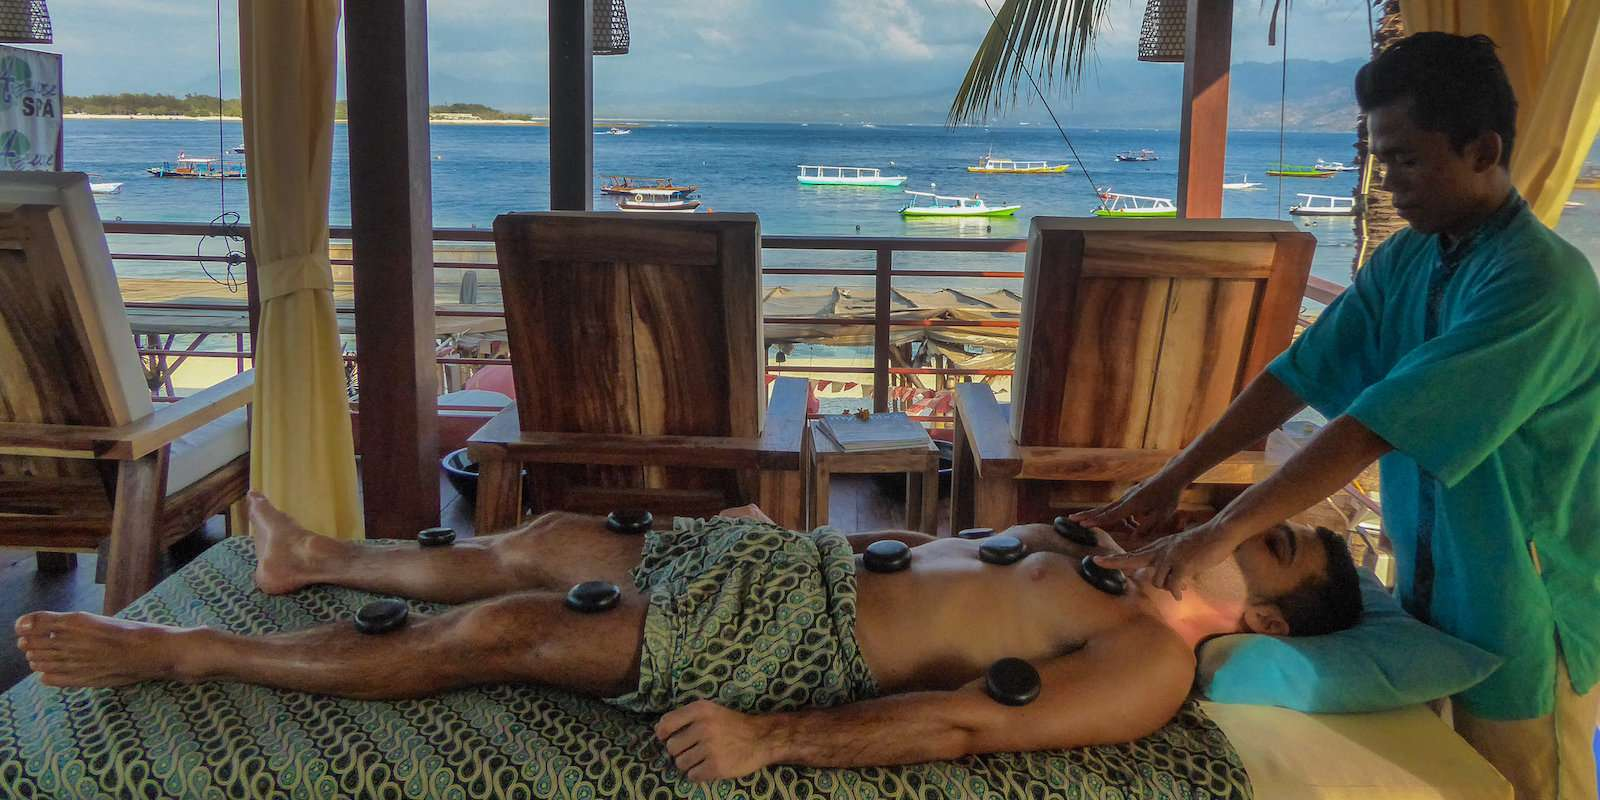 Bali is renowned for its spas and massage services, with many fabulous ones catering exclusively to gay men!